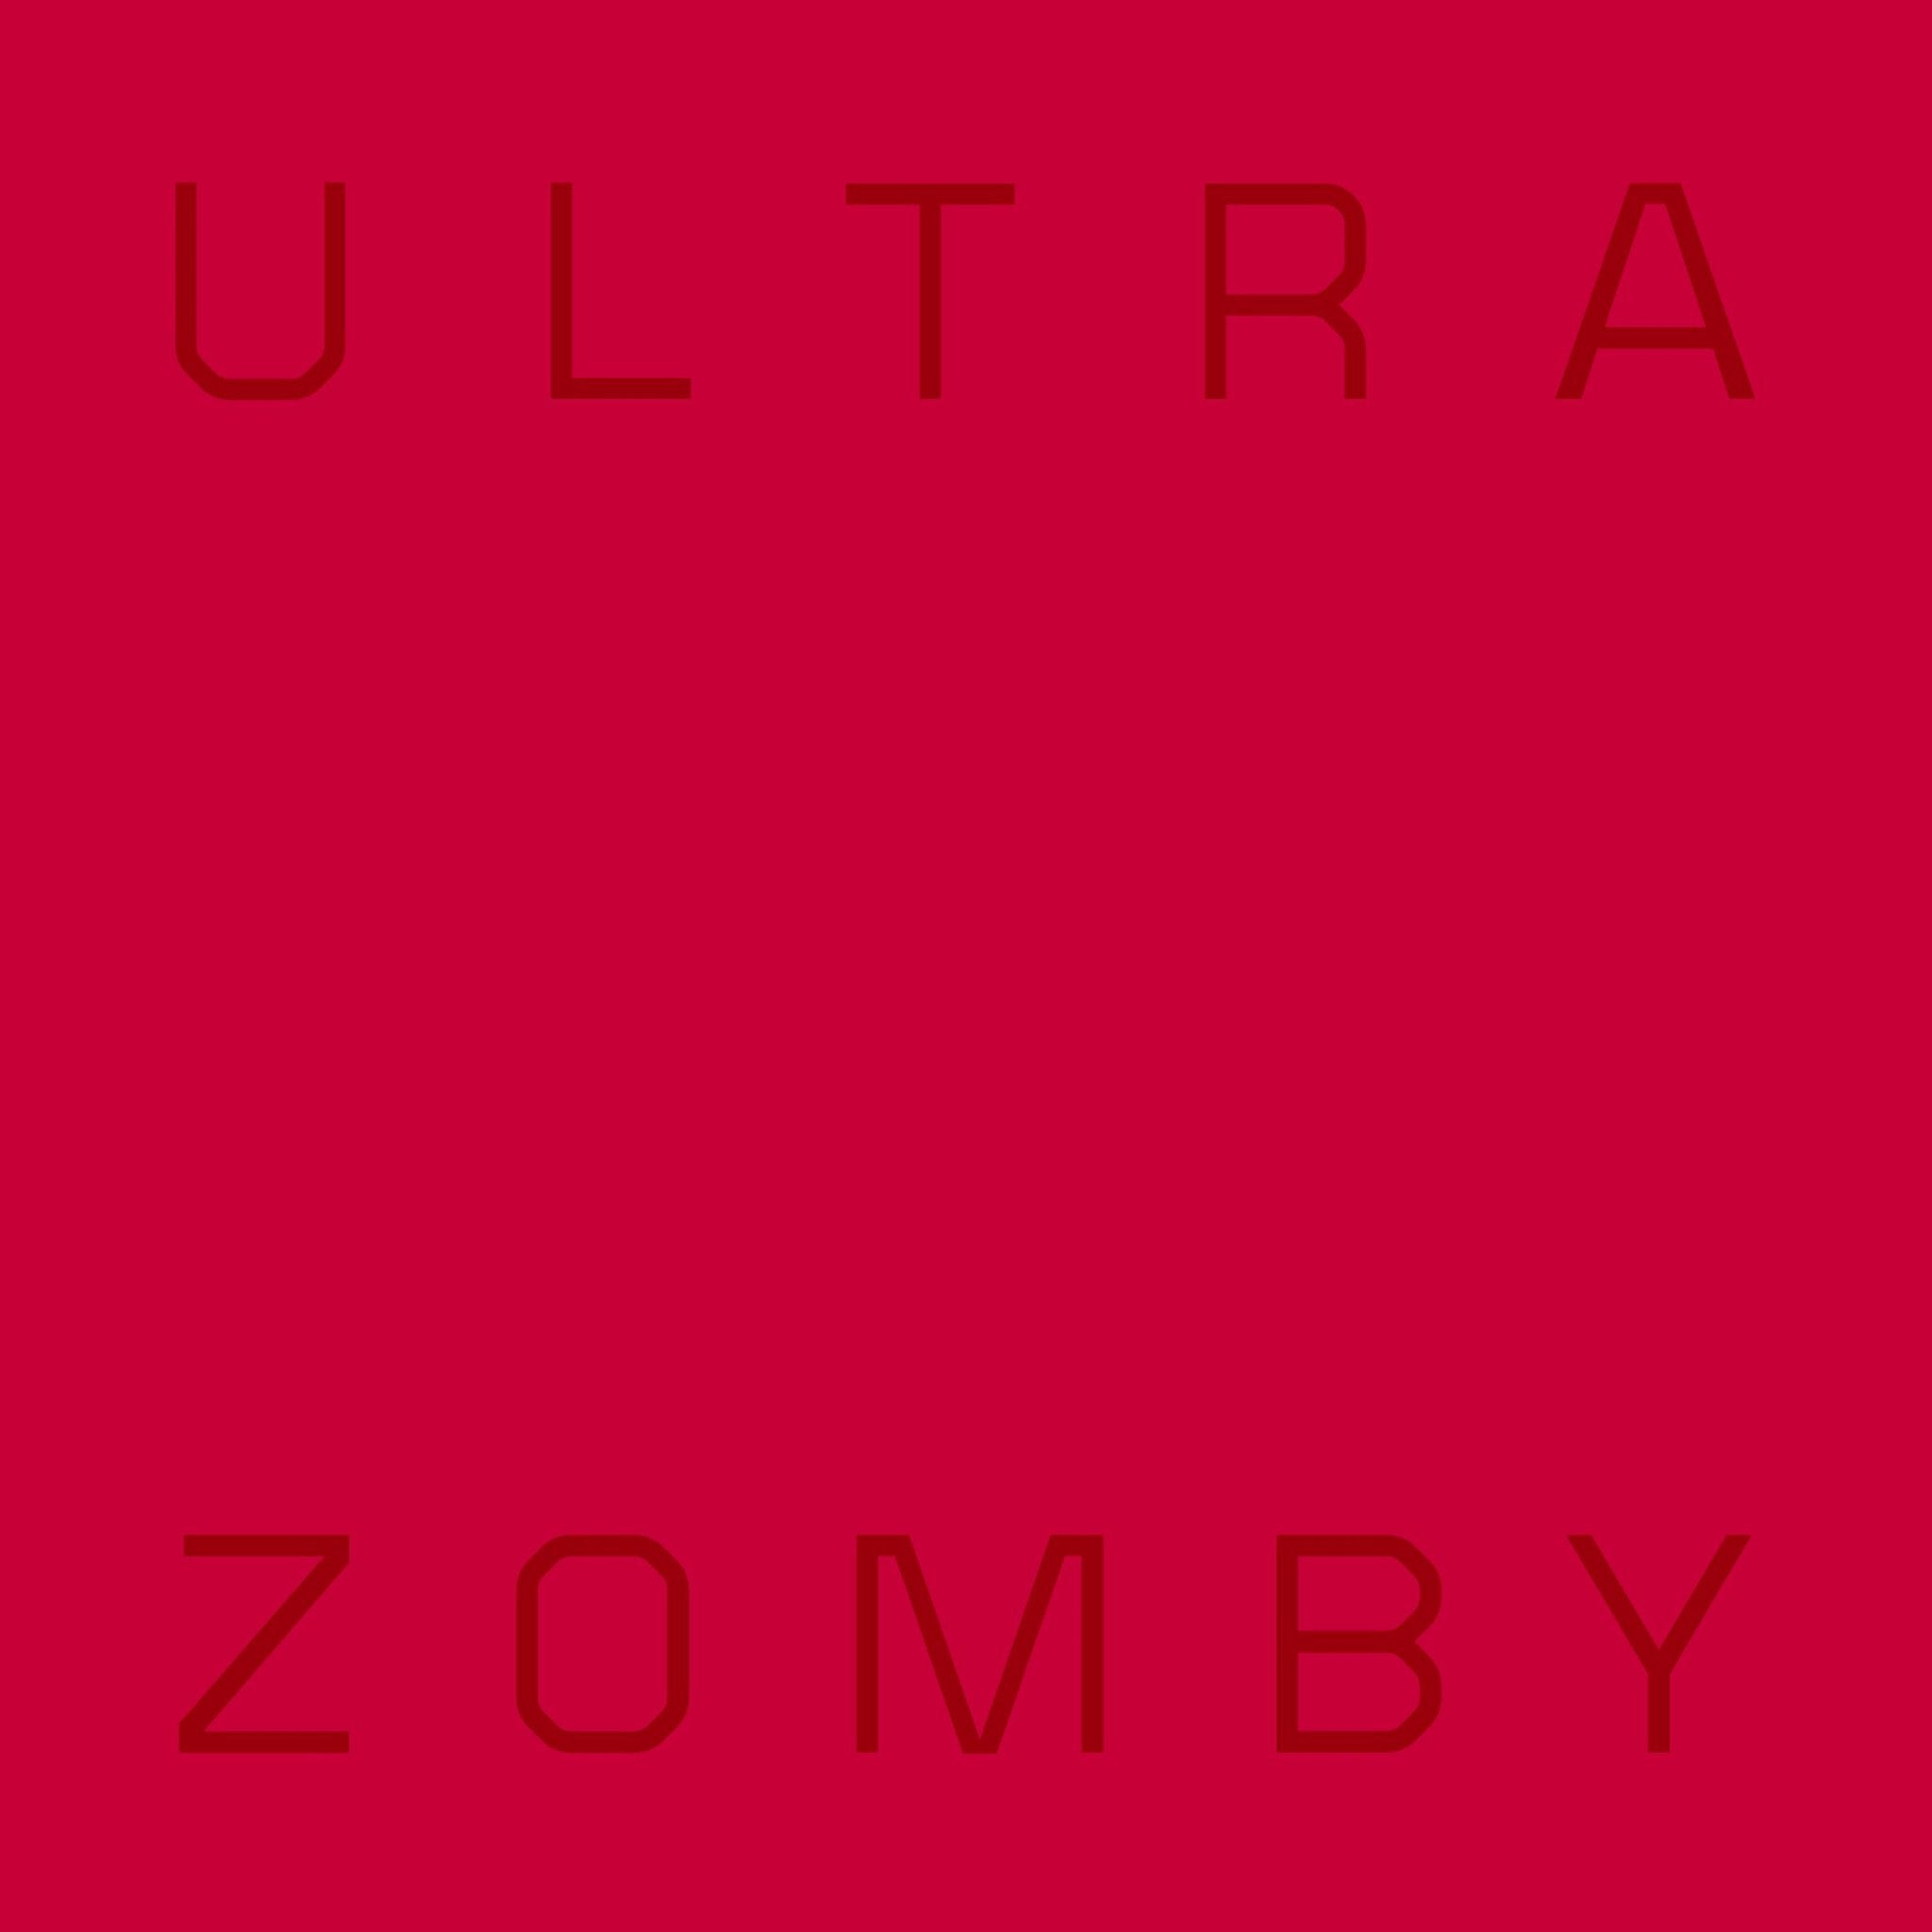 Zomby - Ultra [CD Edition] , CD - Hyperdub, Unearthed Sounds